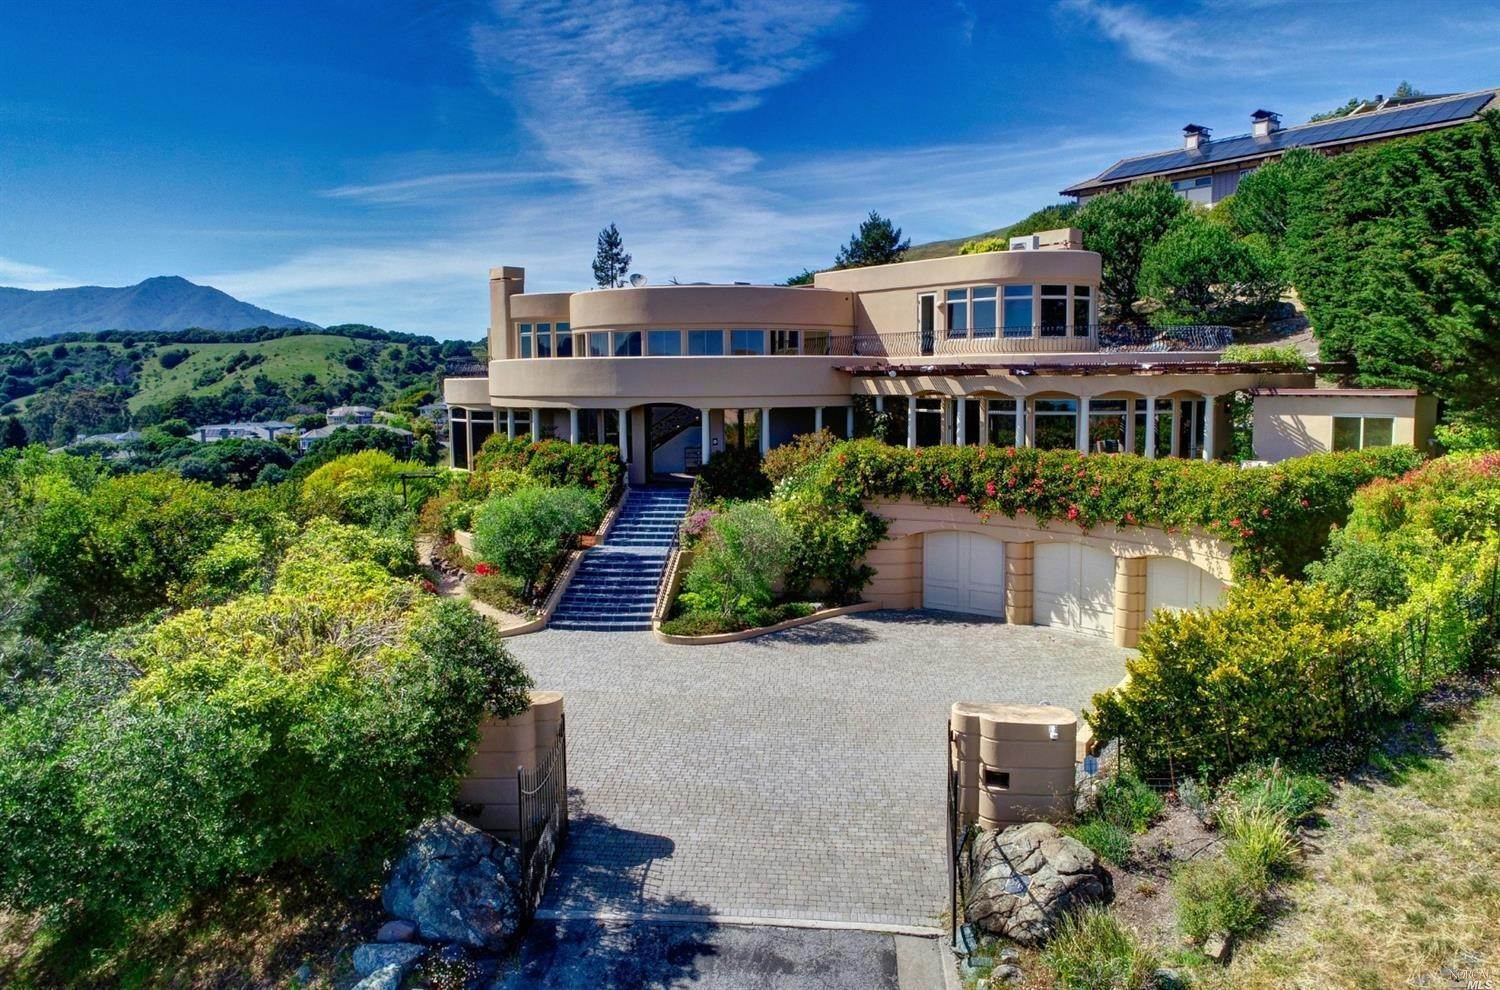 Property for Sale at 347 Blackfield Drive Tiburon, California 94920 United States